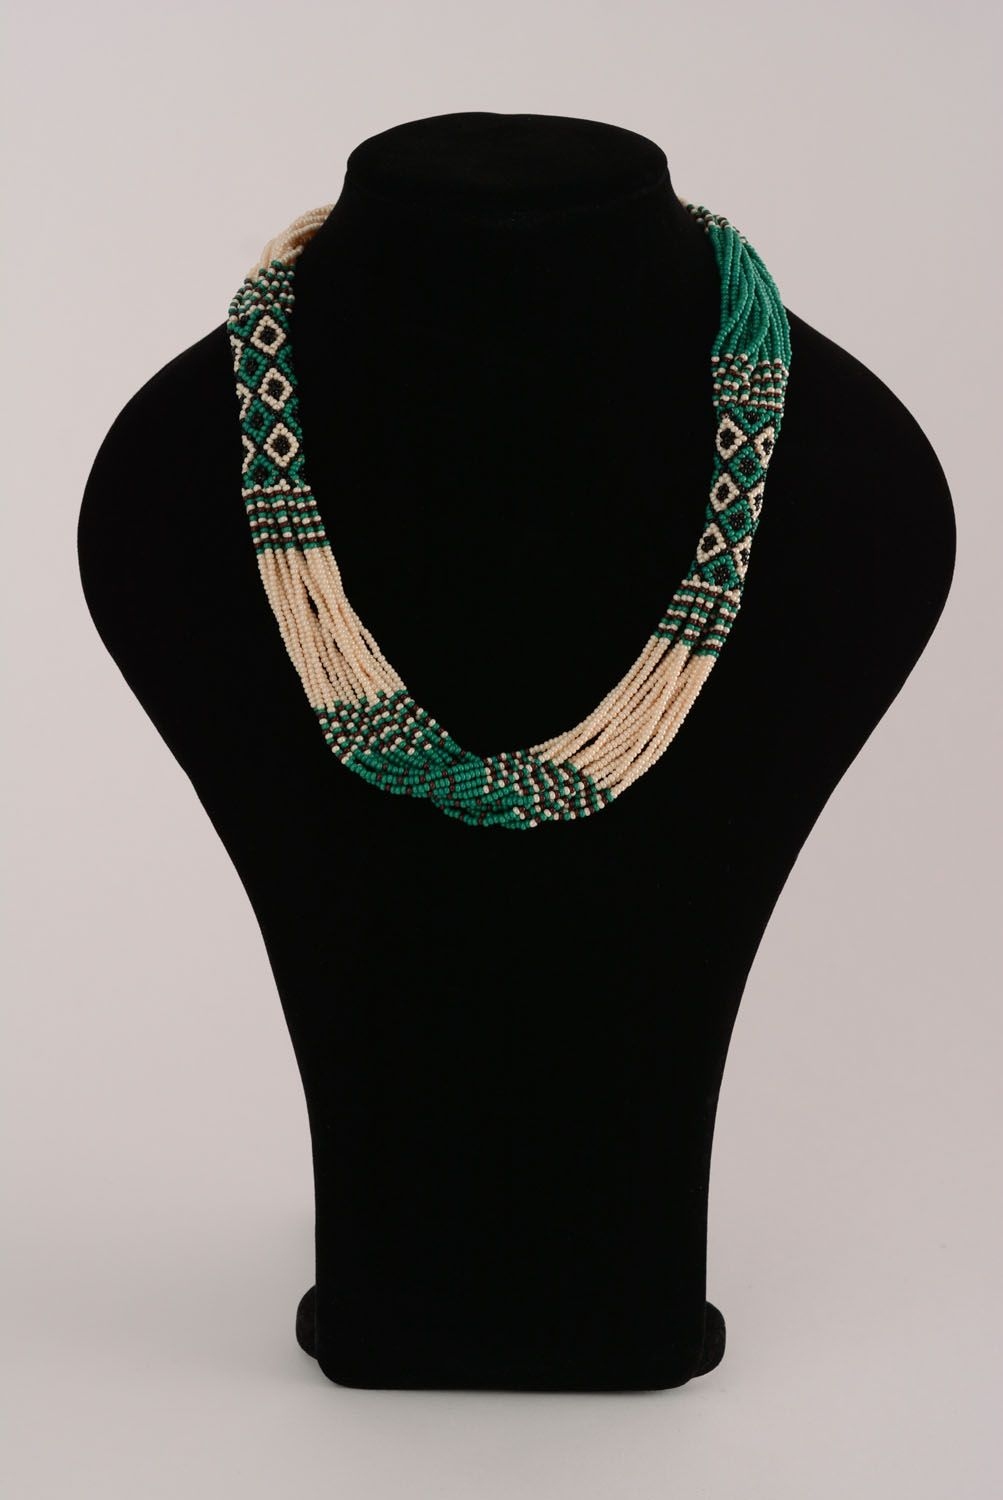 Ethnic beaded necklace photo 3